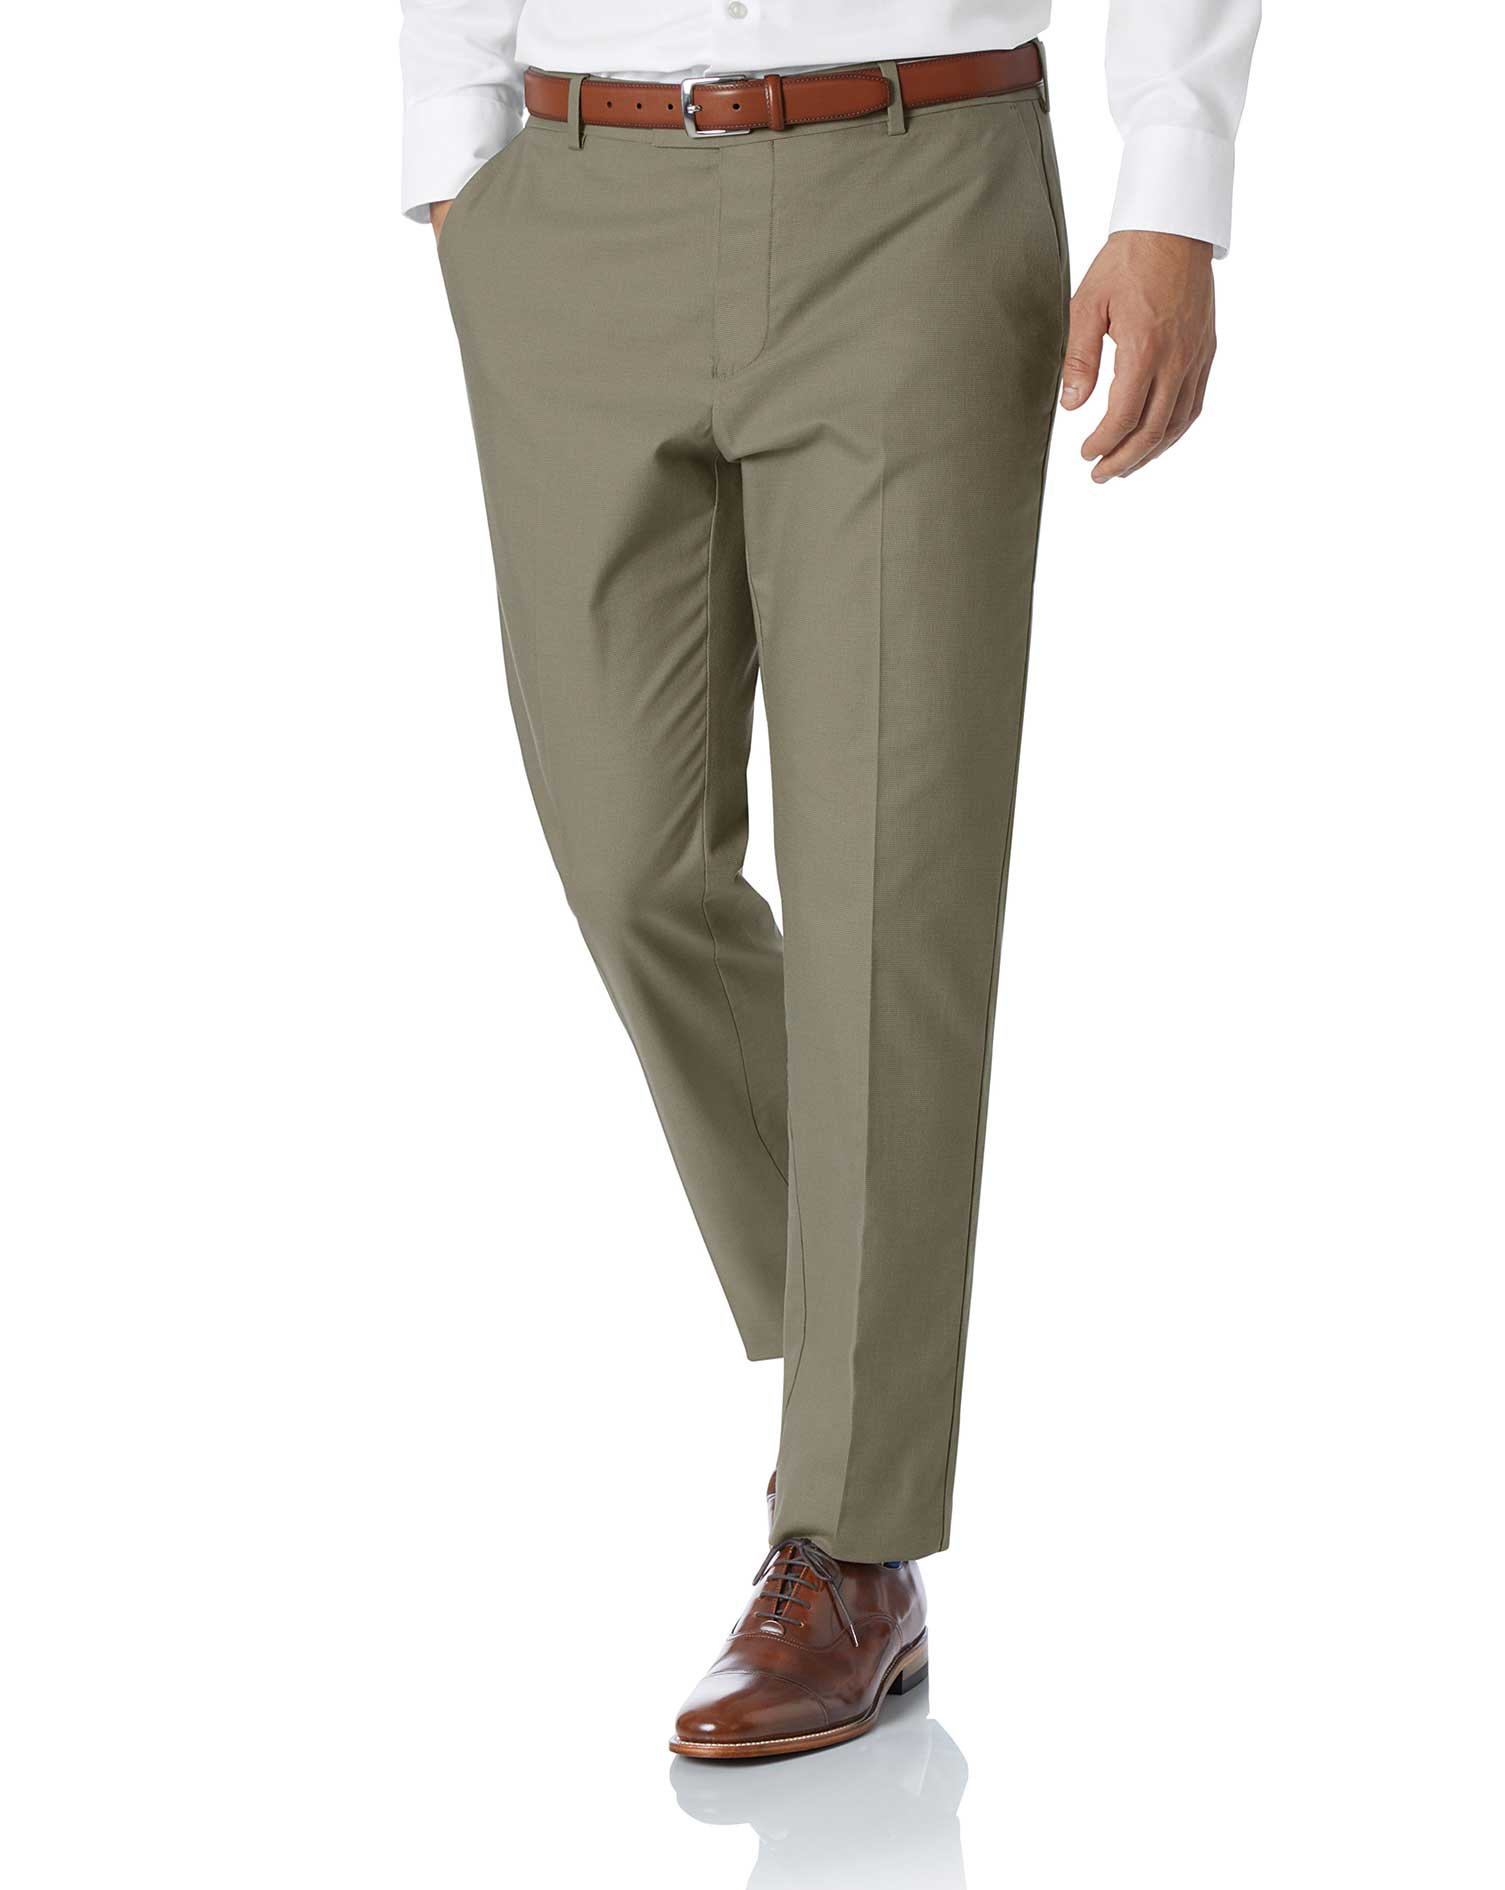 Olive Slim Fit Stretch Non-Iron Trousers Size W40 L32 by Charles Tyrwhitt